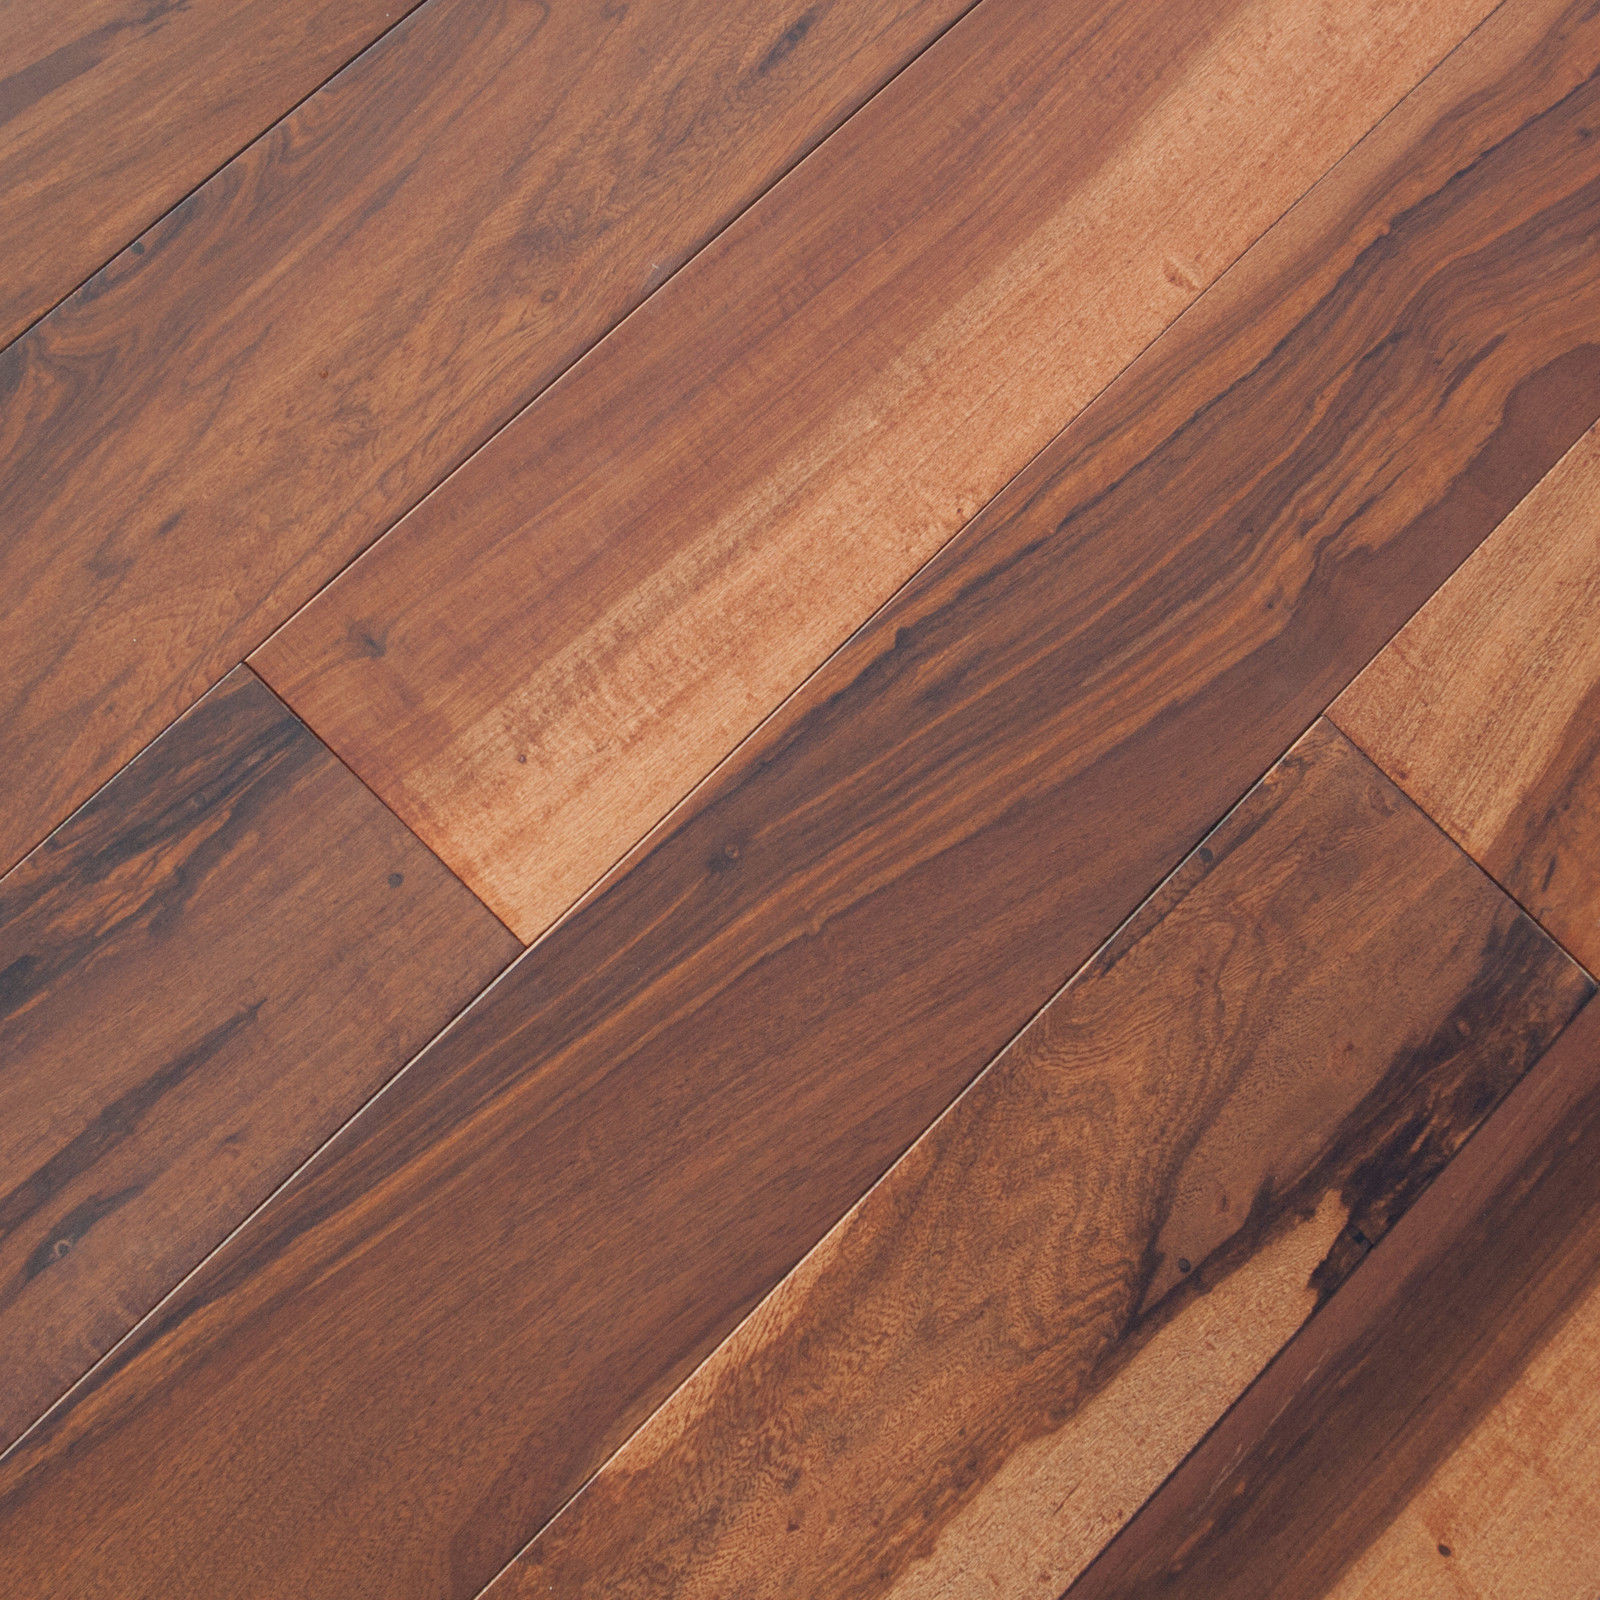 Macchiato Pecan Chocolate Hardwood Flooring Prefinished Solid